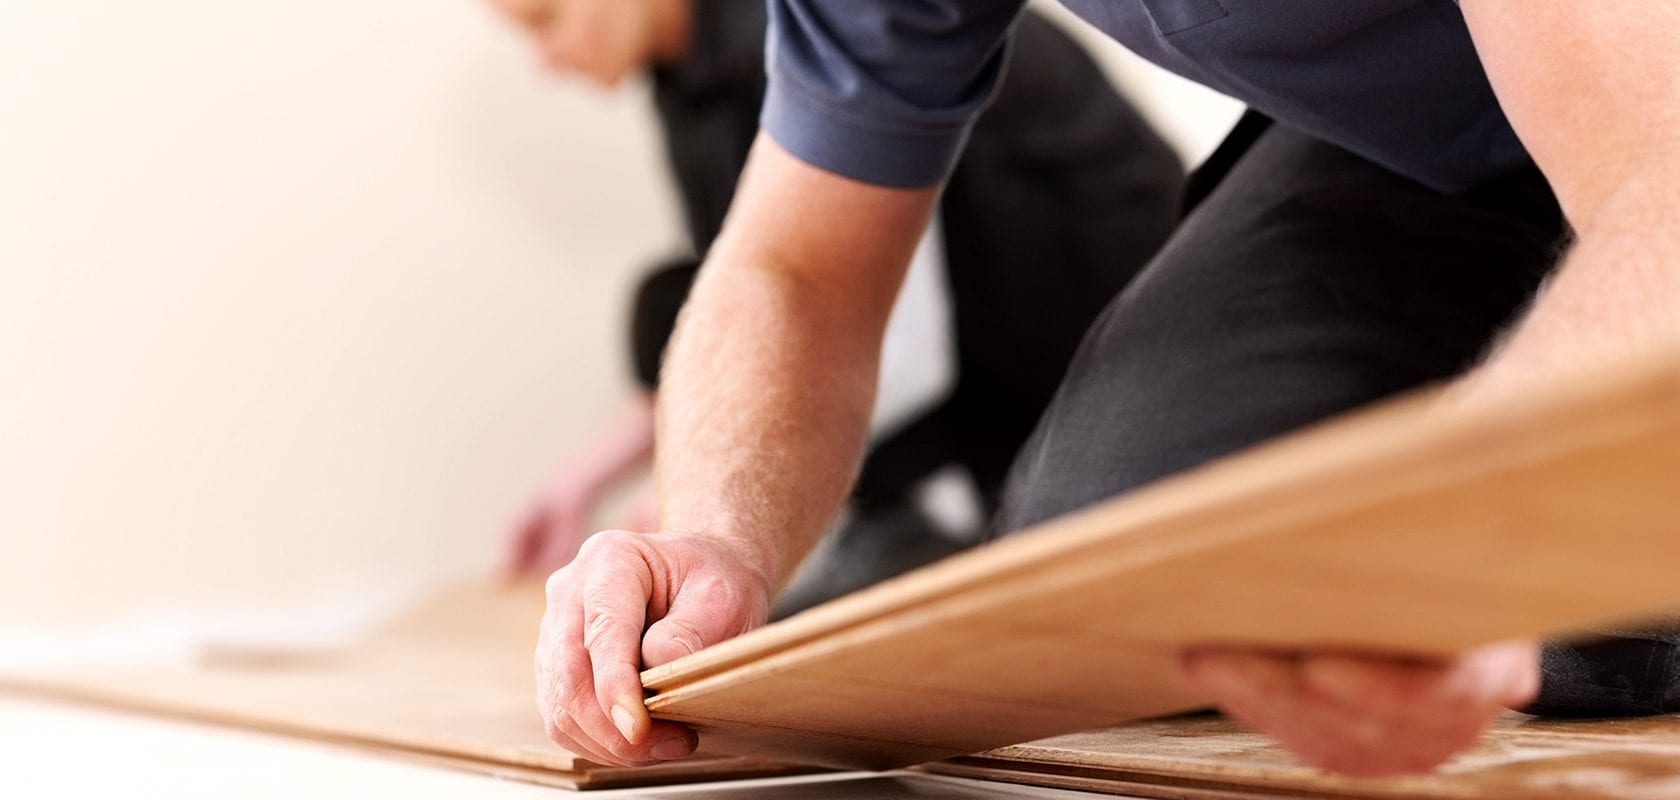 close up view of people installing laminate flooring